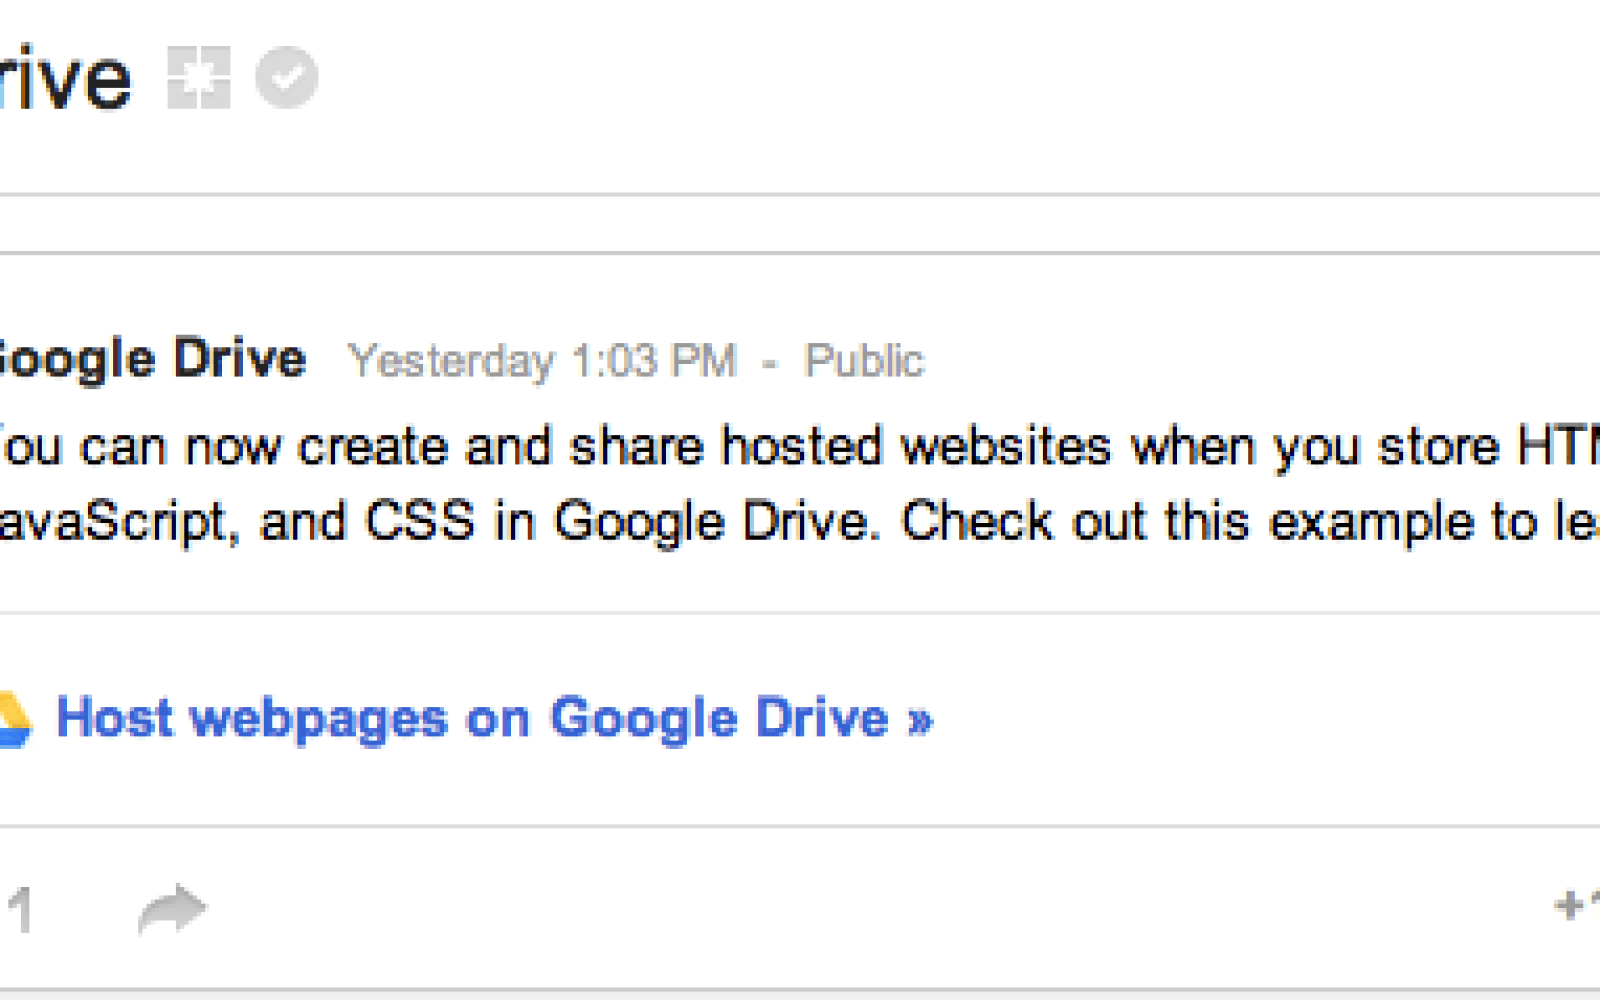 Google Drive now allows Web developers to create and share